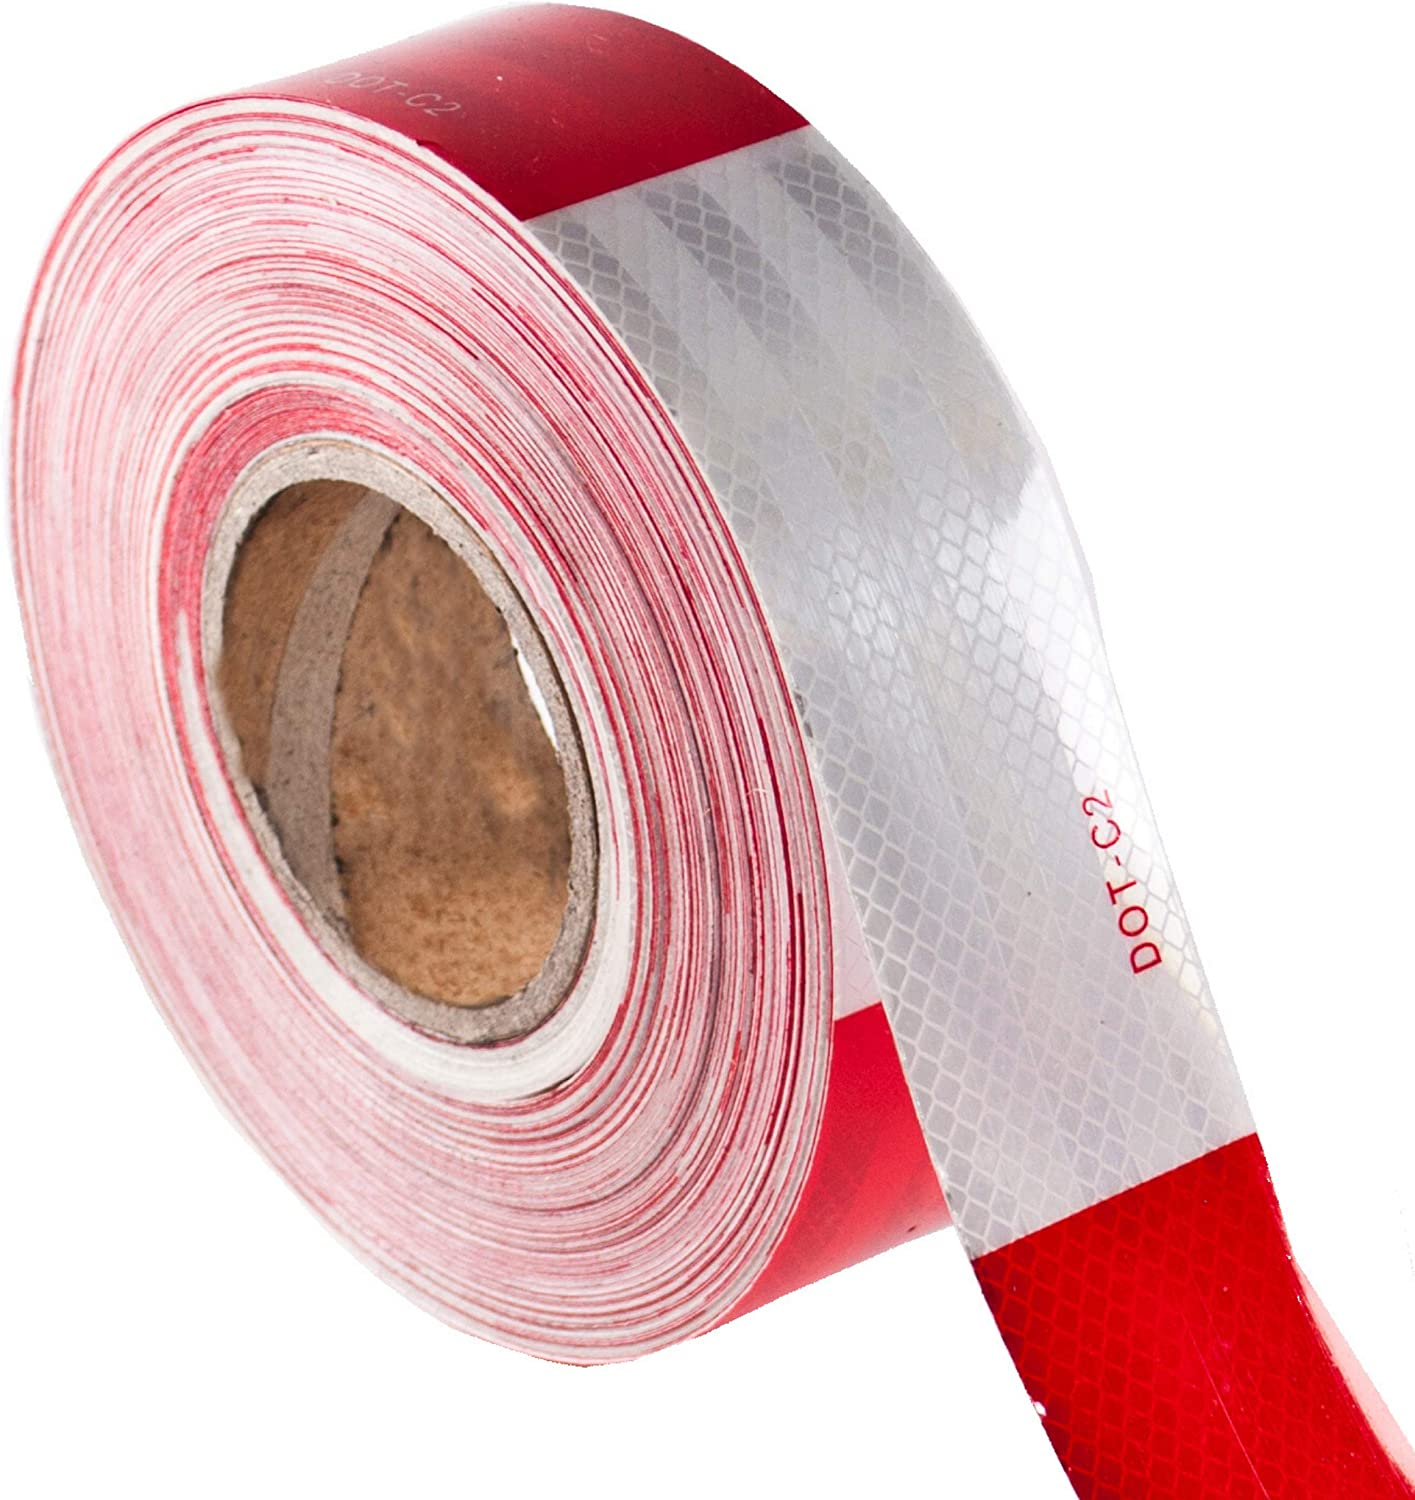 Outdoor Cars Boats Trucks Waterproof Red and White Adhesive Conspicuity Tape Caution Tape Roll for Trailer Signs Vehicles Reflective Tape 2 Inch x 148 Feet